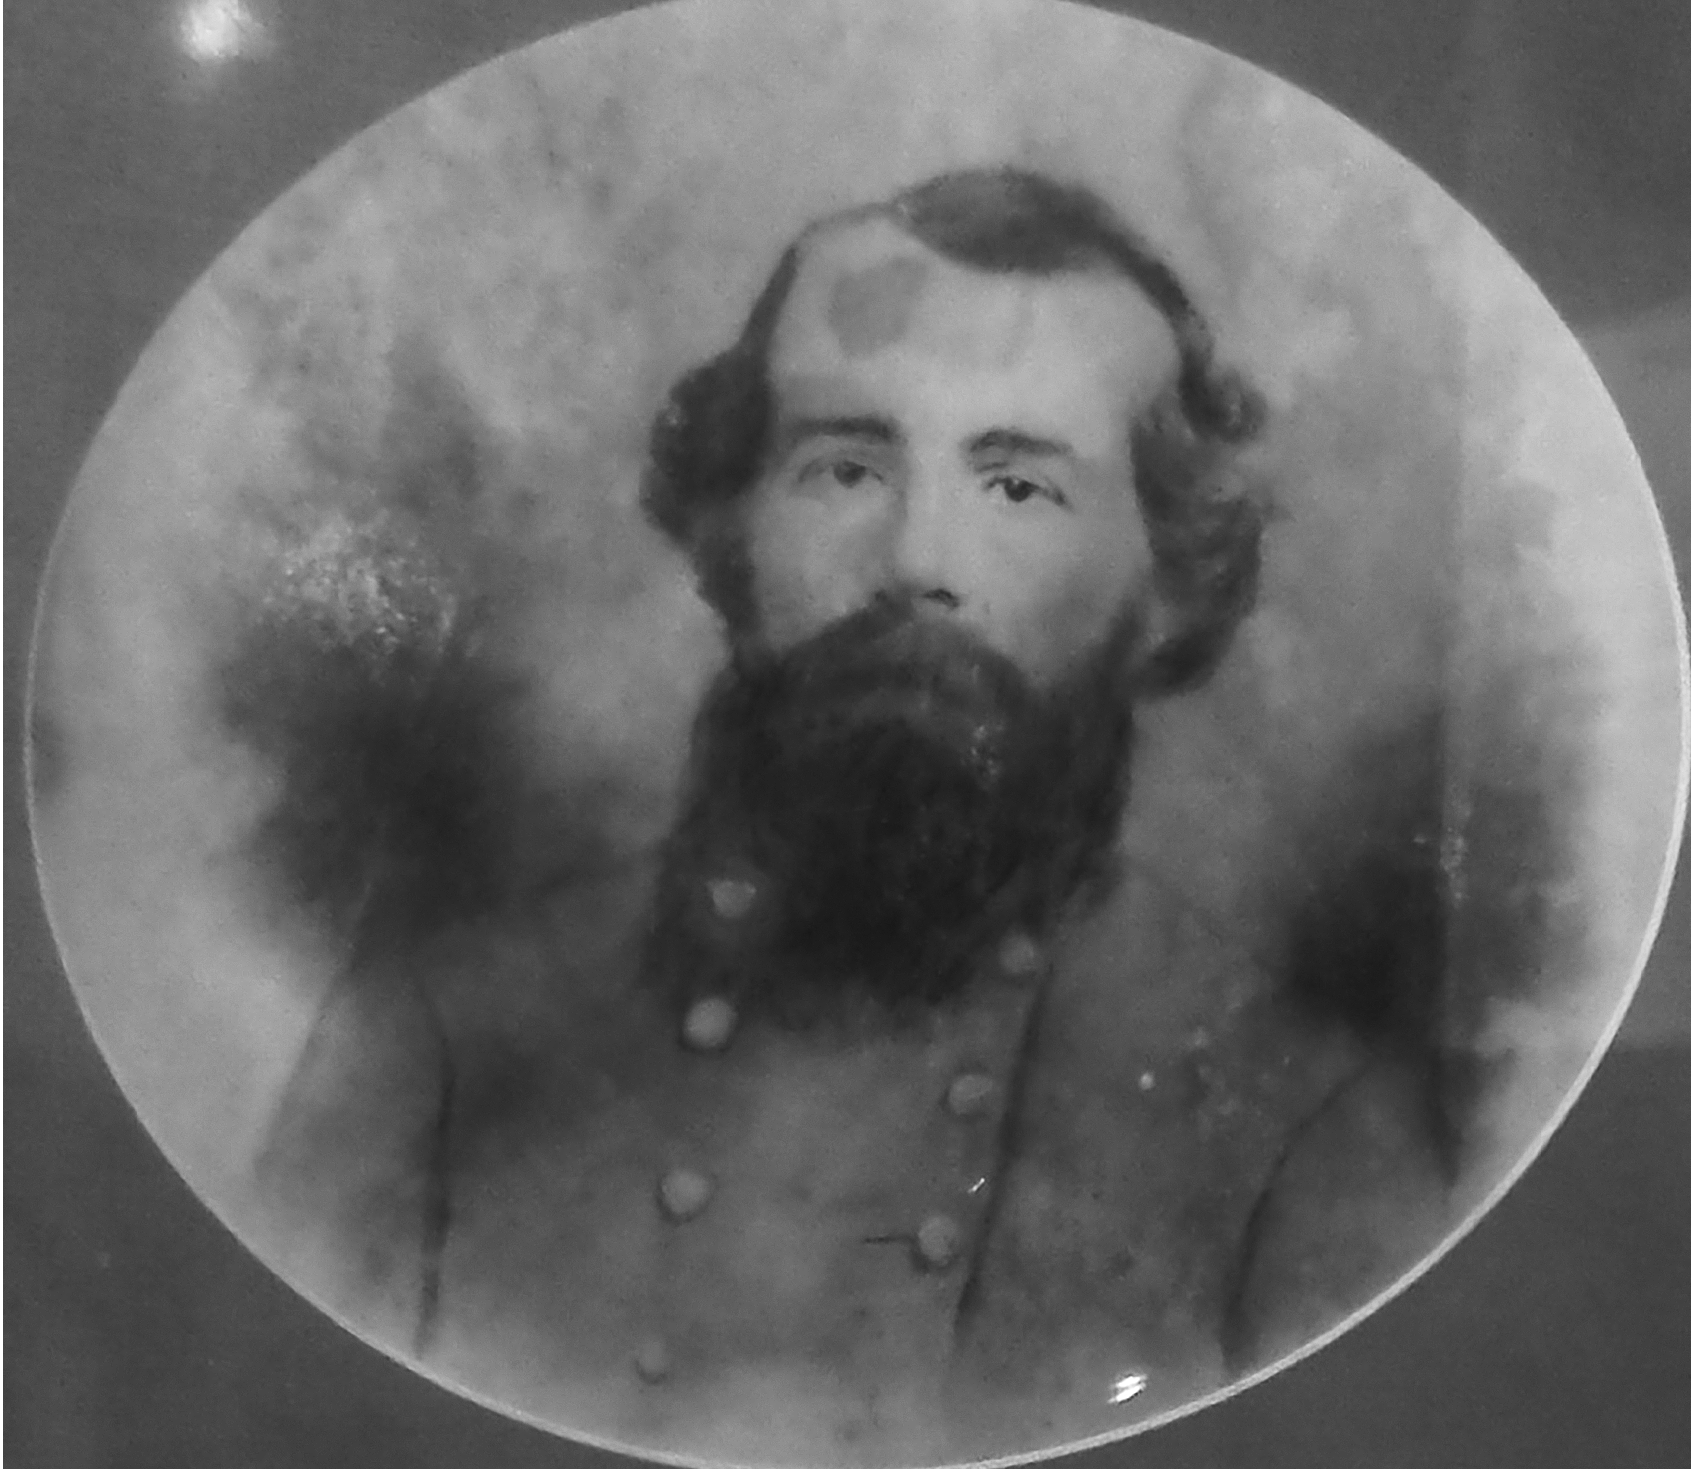 Captain Joseph Forrest organized the Chesapeake Artillery on January 1, 1862. He was the only individual slaveholder in the unit. Courtesy of Debi Burt.